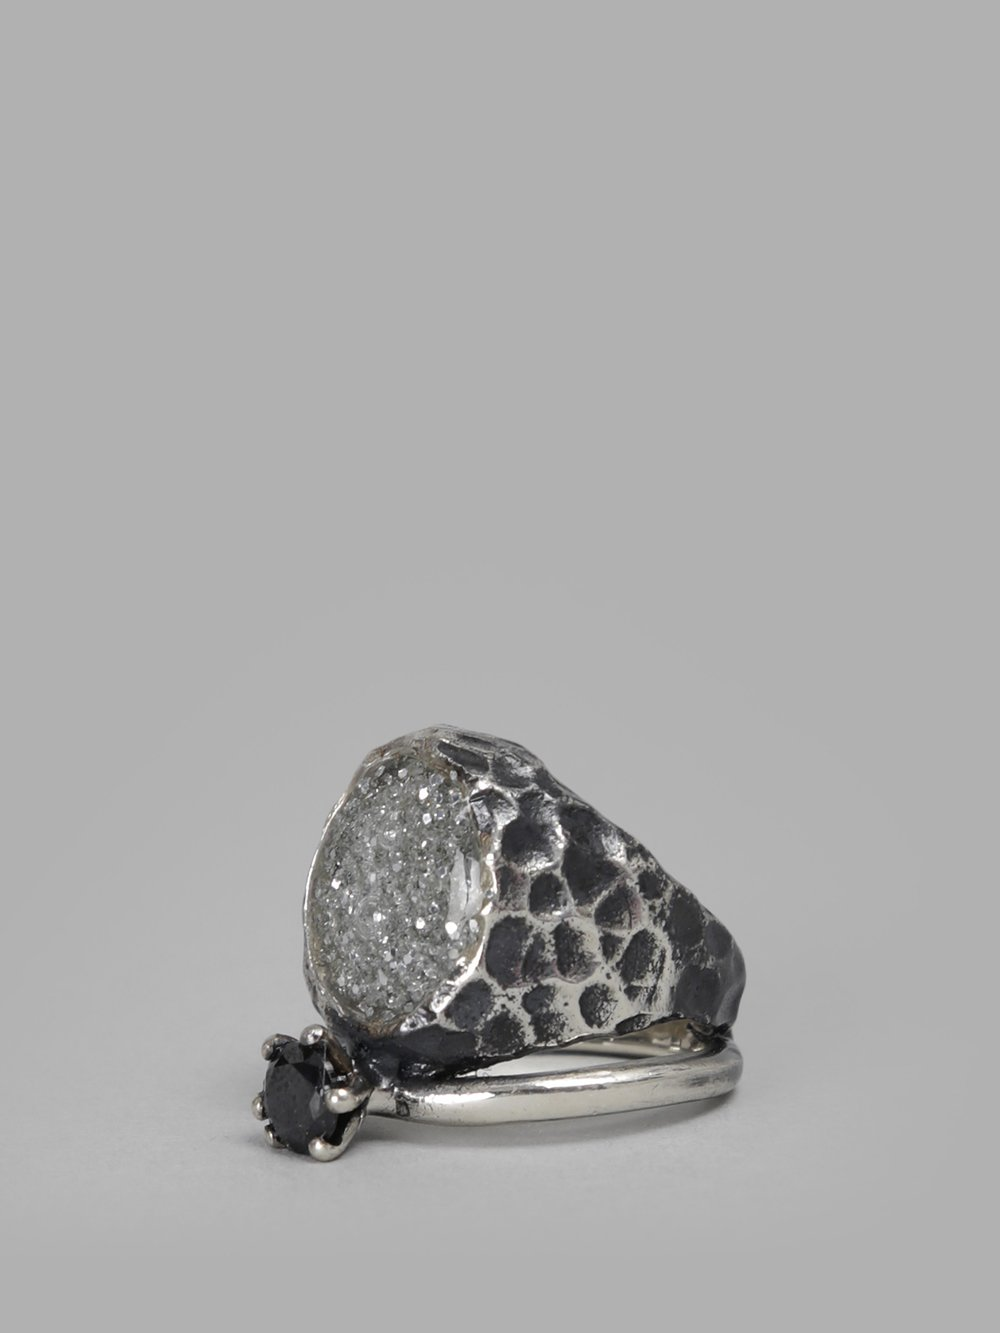 VOODOO JEWELS WOMEN'S SILVER SIGILLIUM RING WITH BLACK STONE